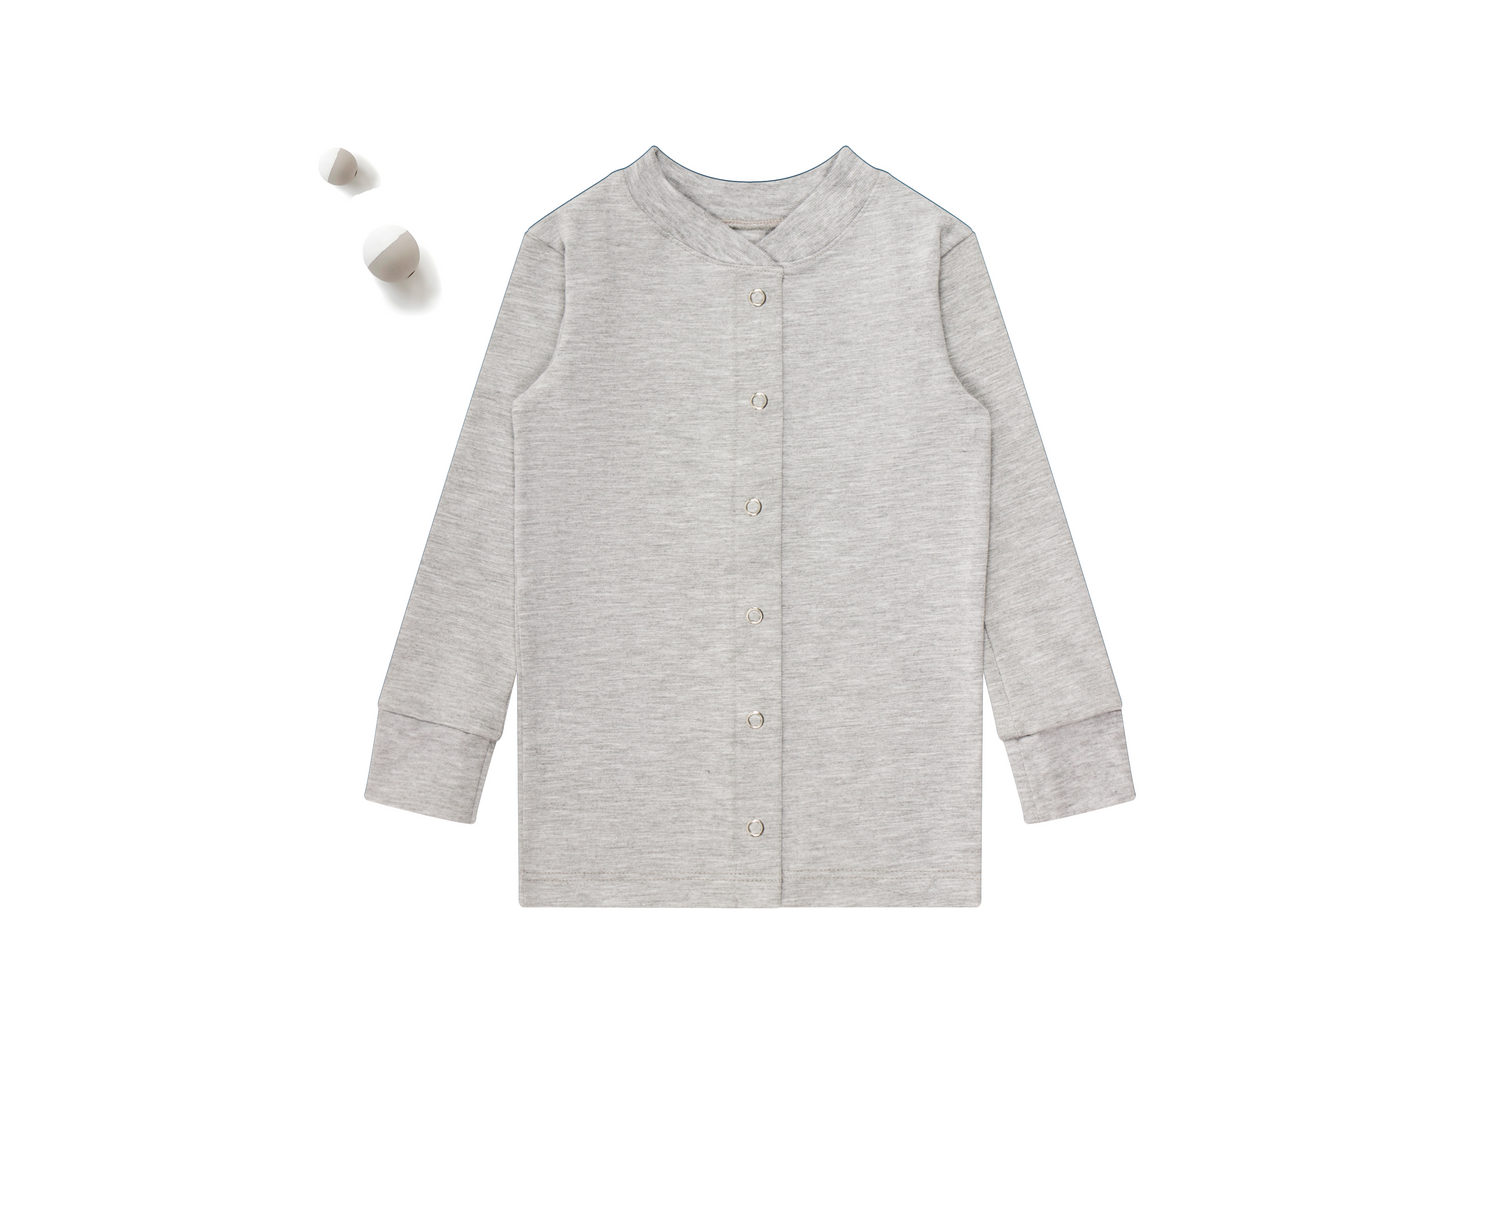 ZO & AV Little Lounge Top Long Sleeve / Pajama Shirt | Heather Gray